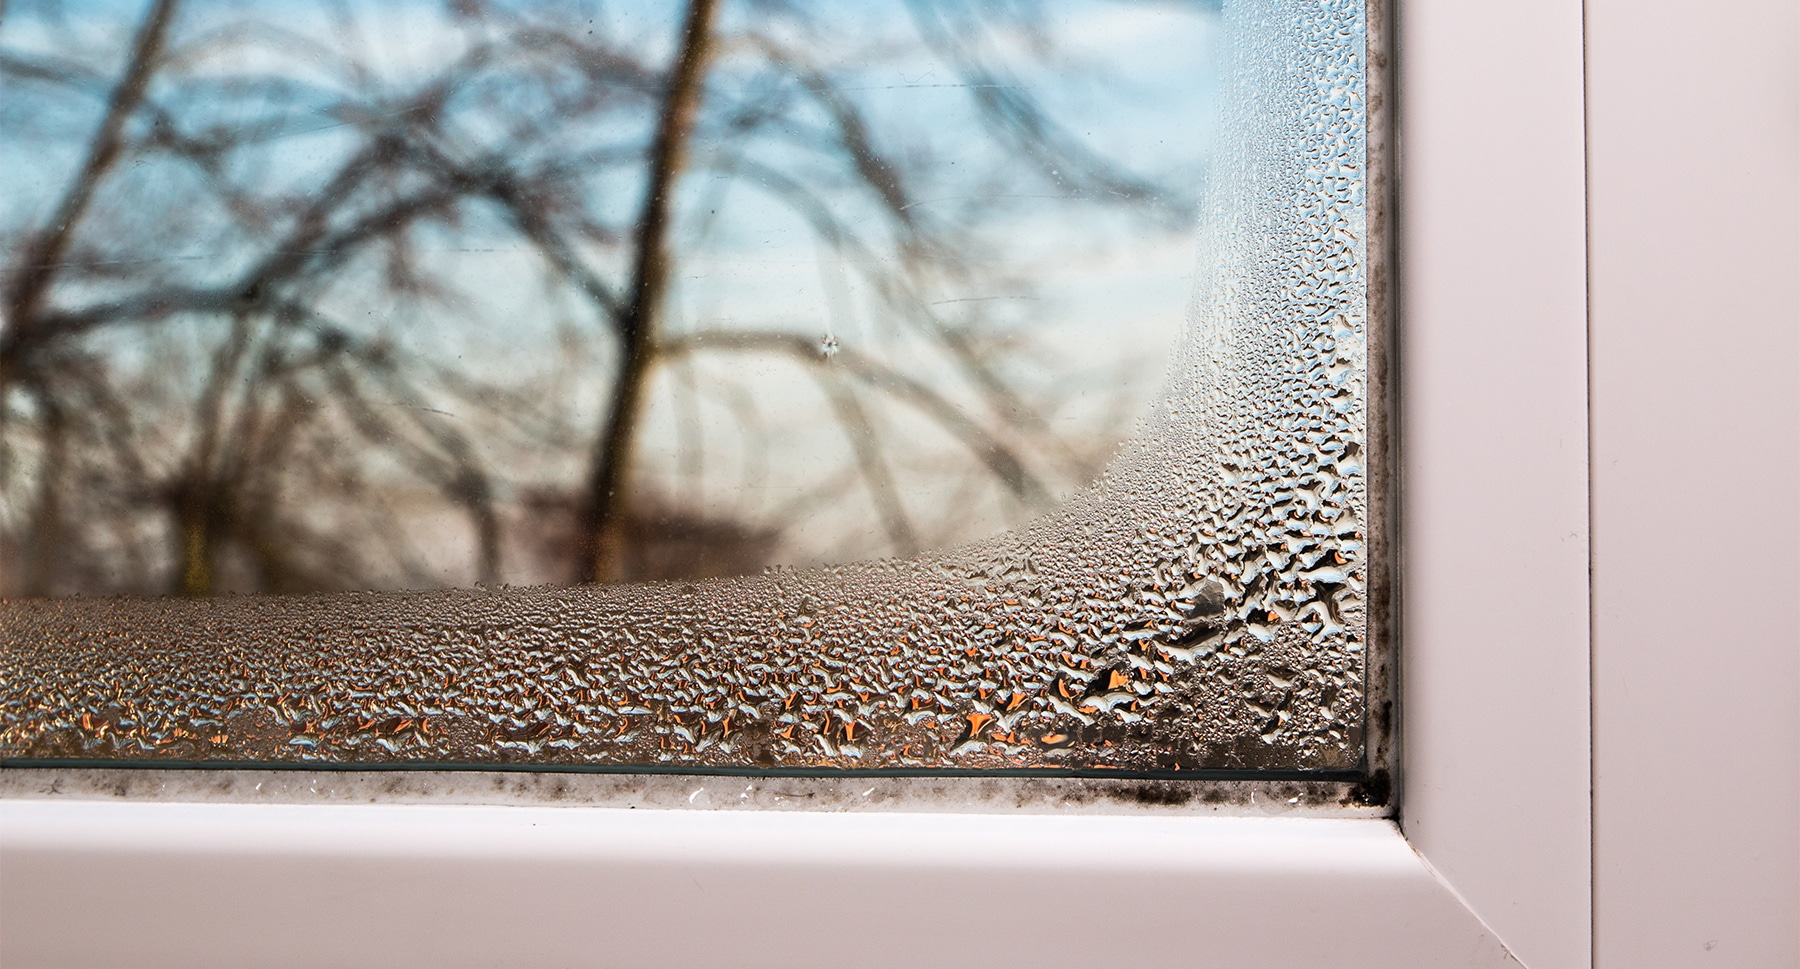 Moisture on window from poor ventilation